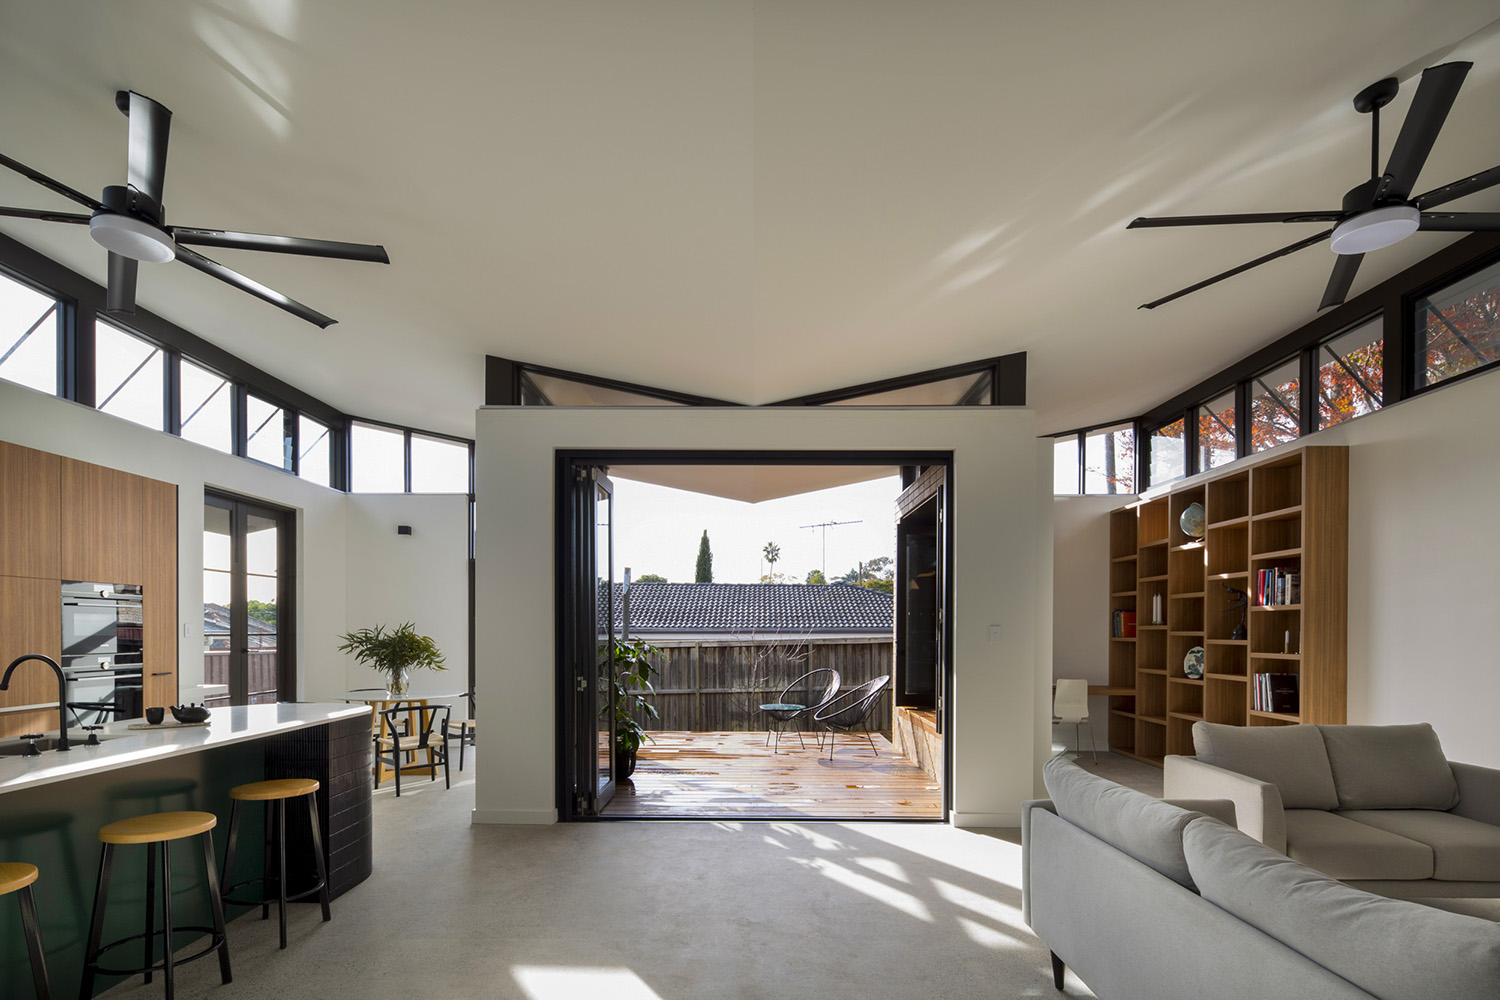 Butterfly Roof Kitchen and Lounge Room Interior